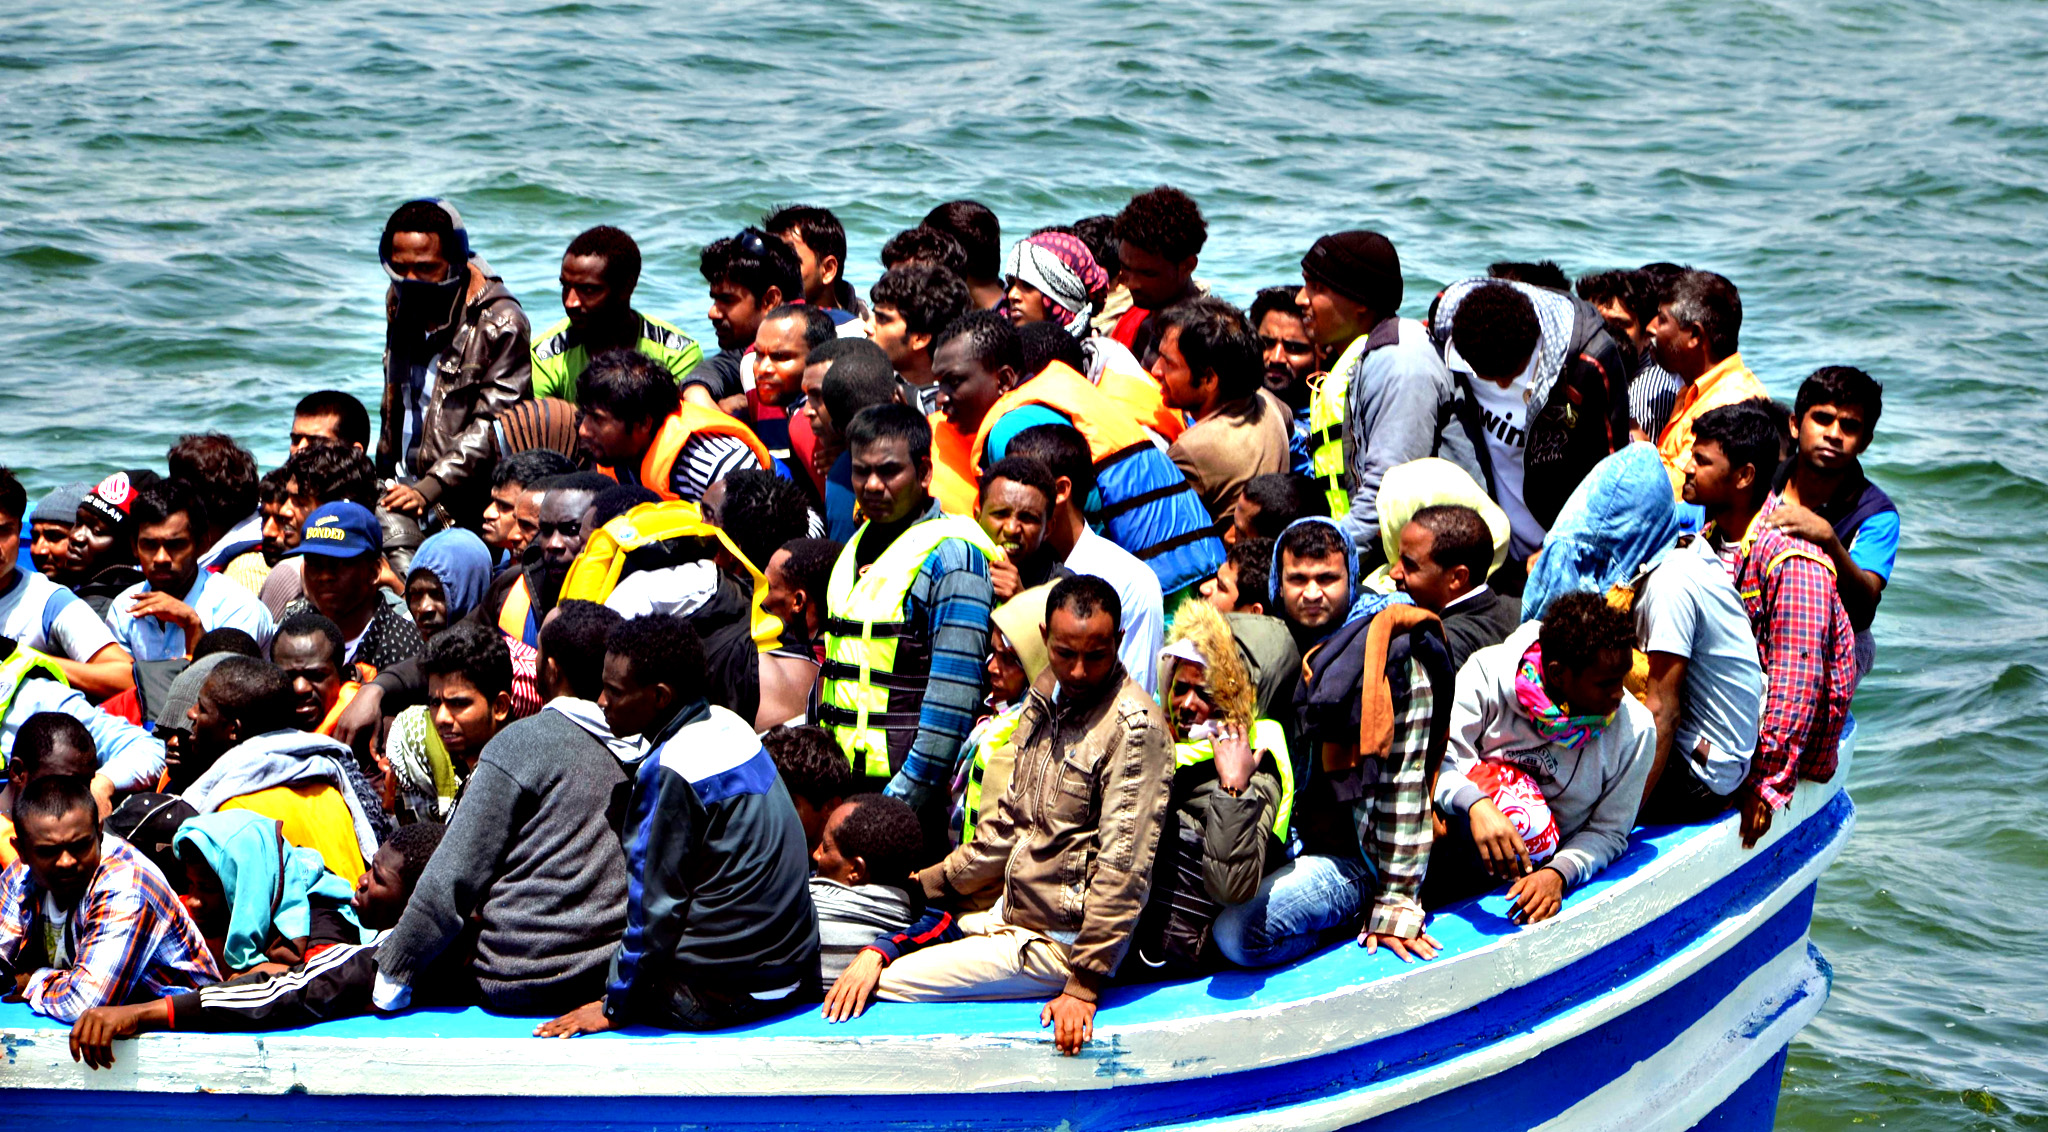 Migrants arrive at the port in the Tunisian town of Ben Guerdane, some 40 kilometres west of the Libyan border, following their rescue by Tunisia's coastguard and navy after their vessel overturned off Libya, on June 10, 2015. 354 migrants were rescued from two boats which broke down as they headed from Libya to Italy, the Red Crescent and an AFP correspondent said